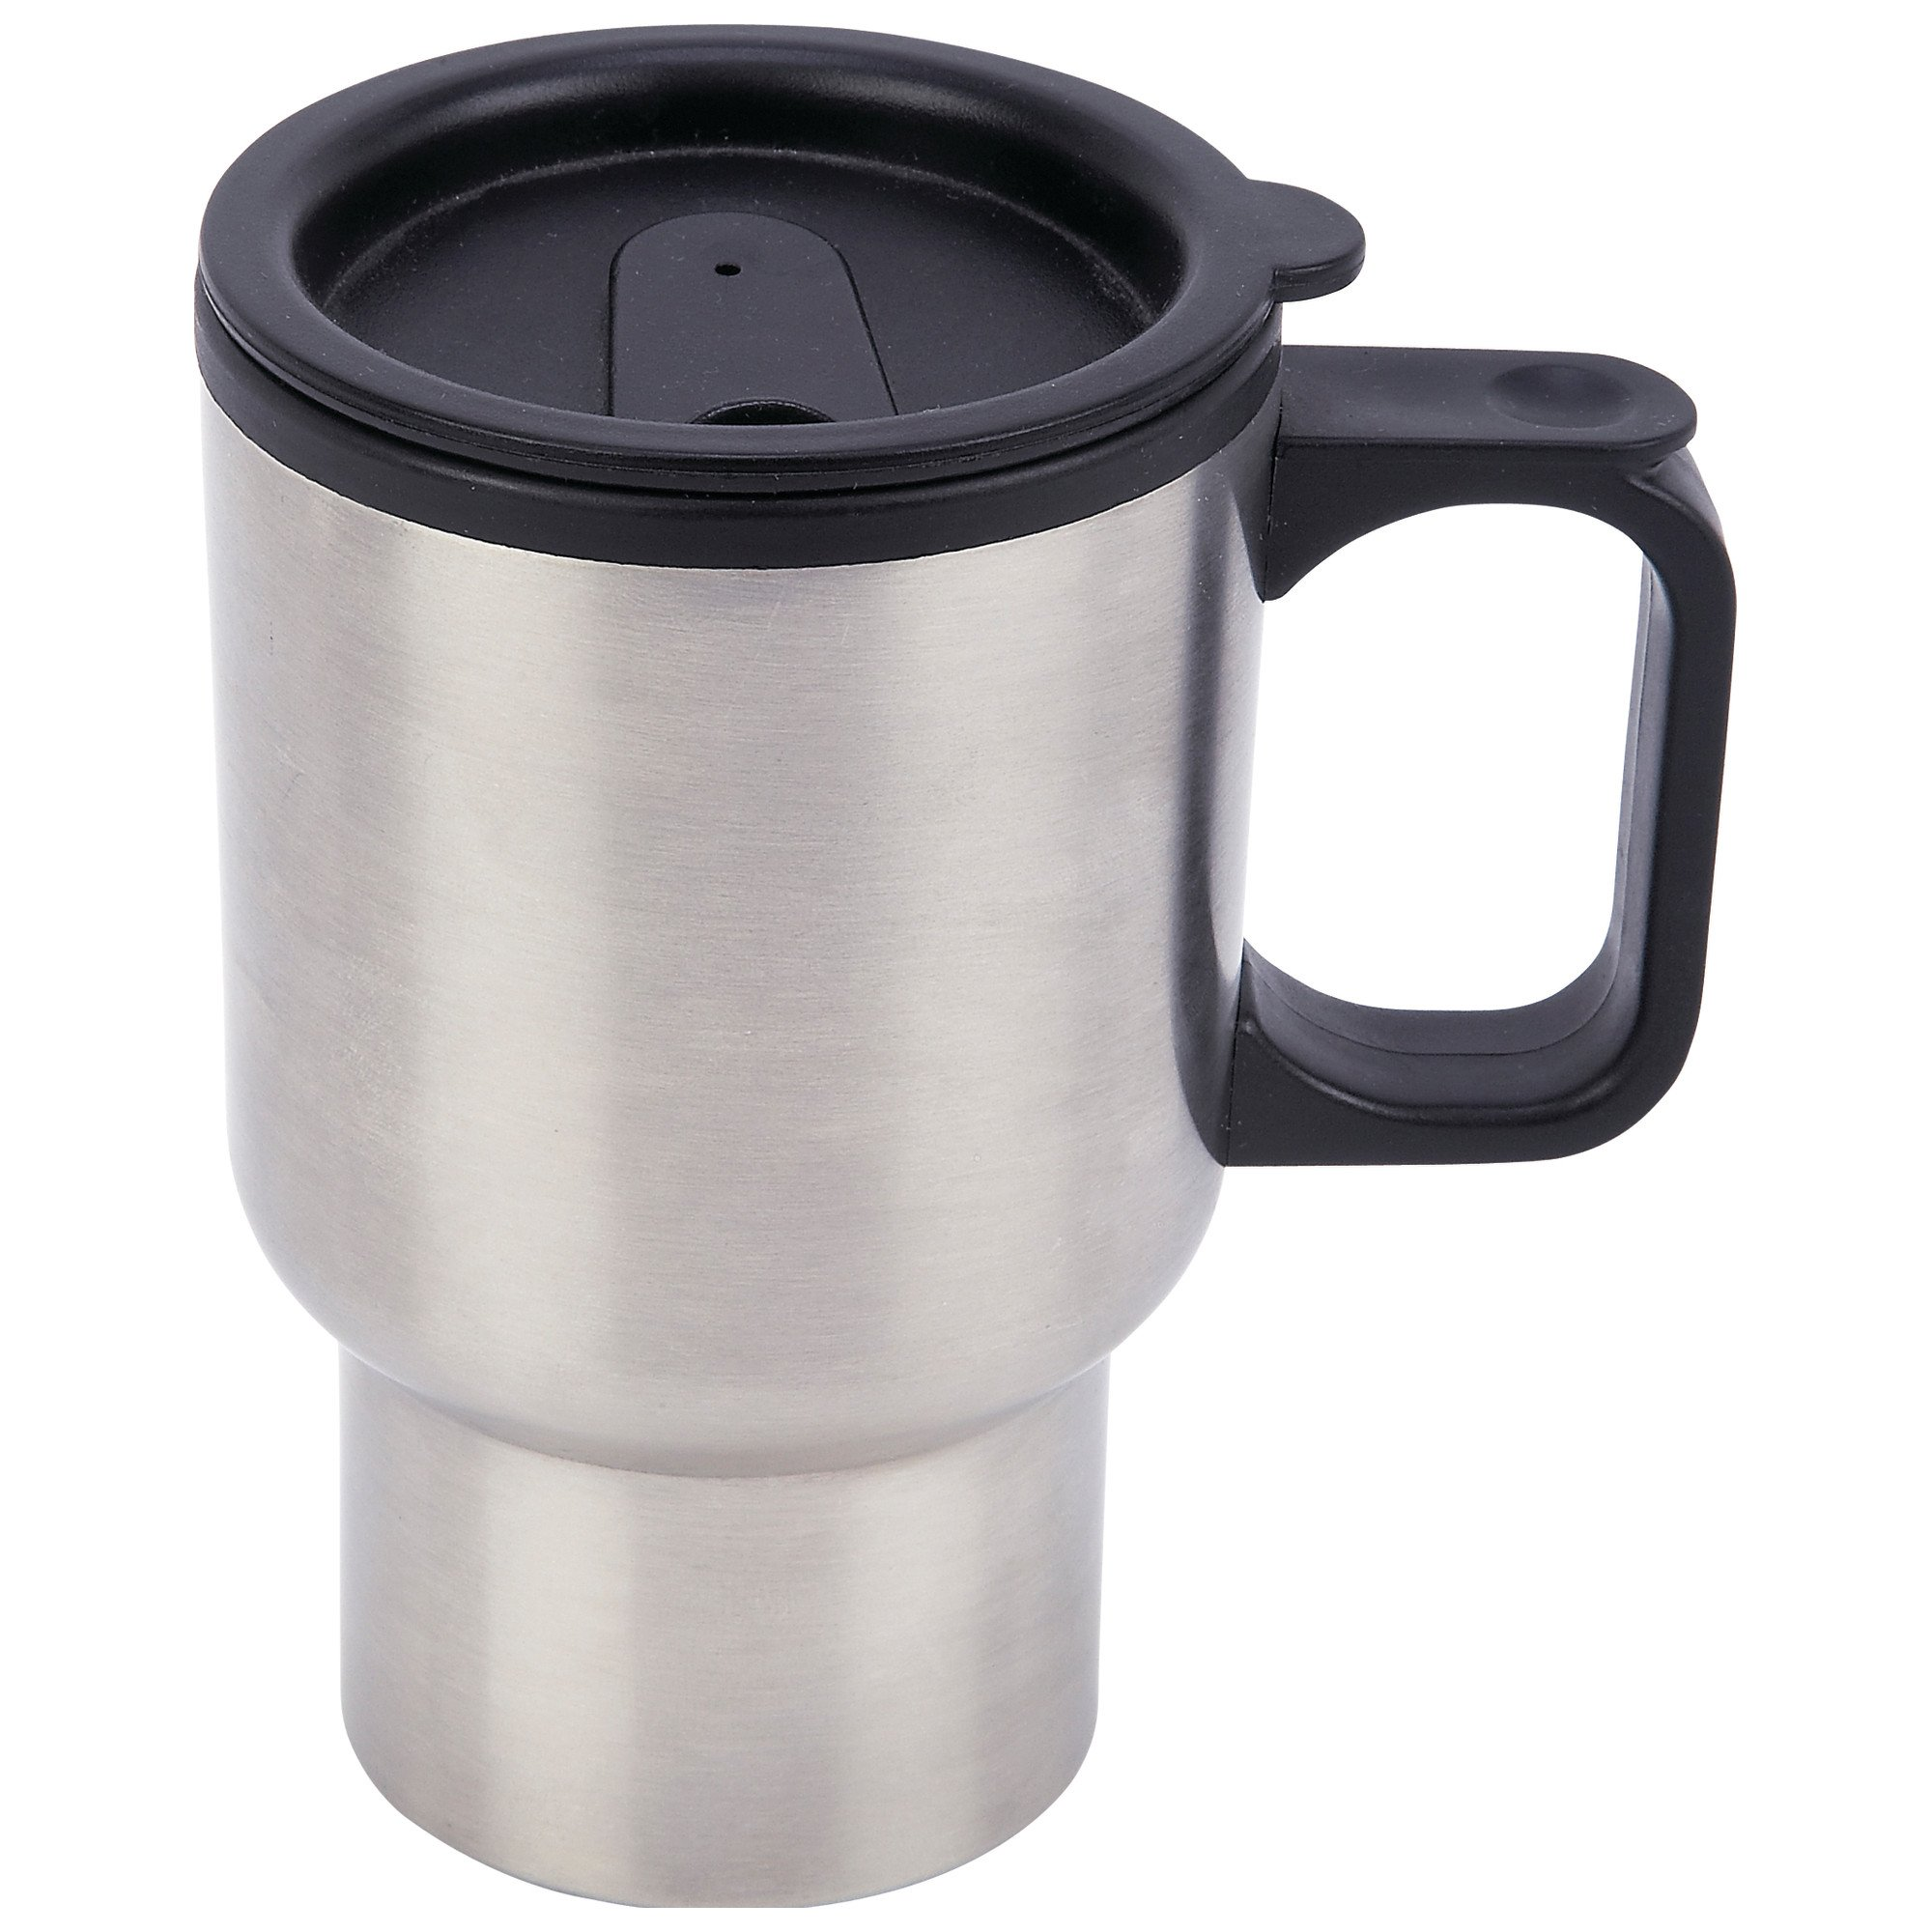 coffee travel mug stainless steel insulated 14oz cup thermos hot cold drink ebay. Black Bedroom Furniture Sets. Home Design Ideas